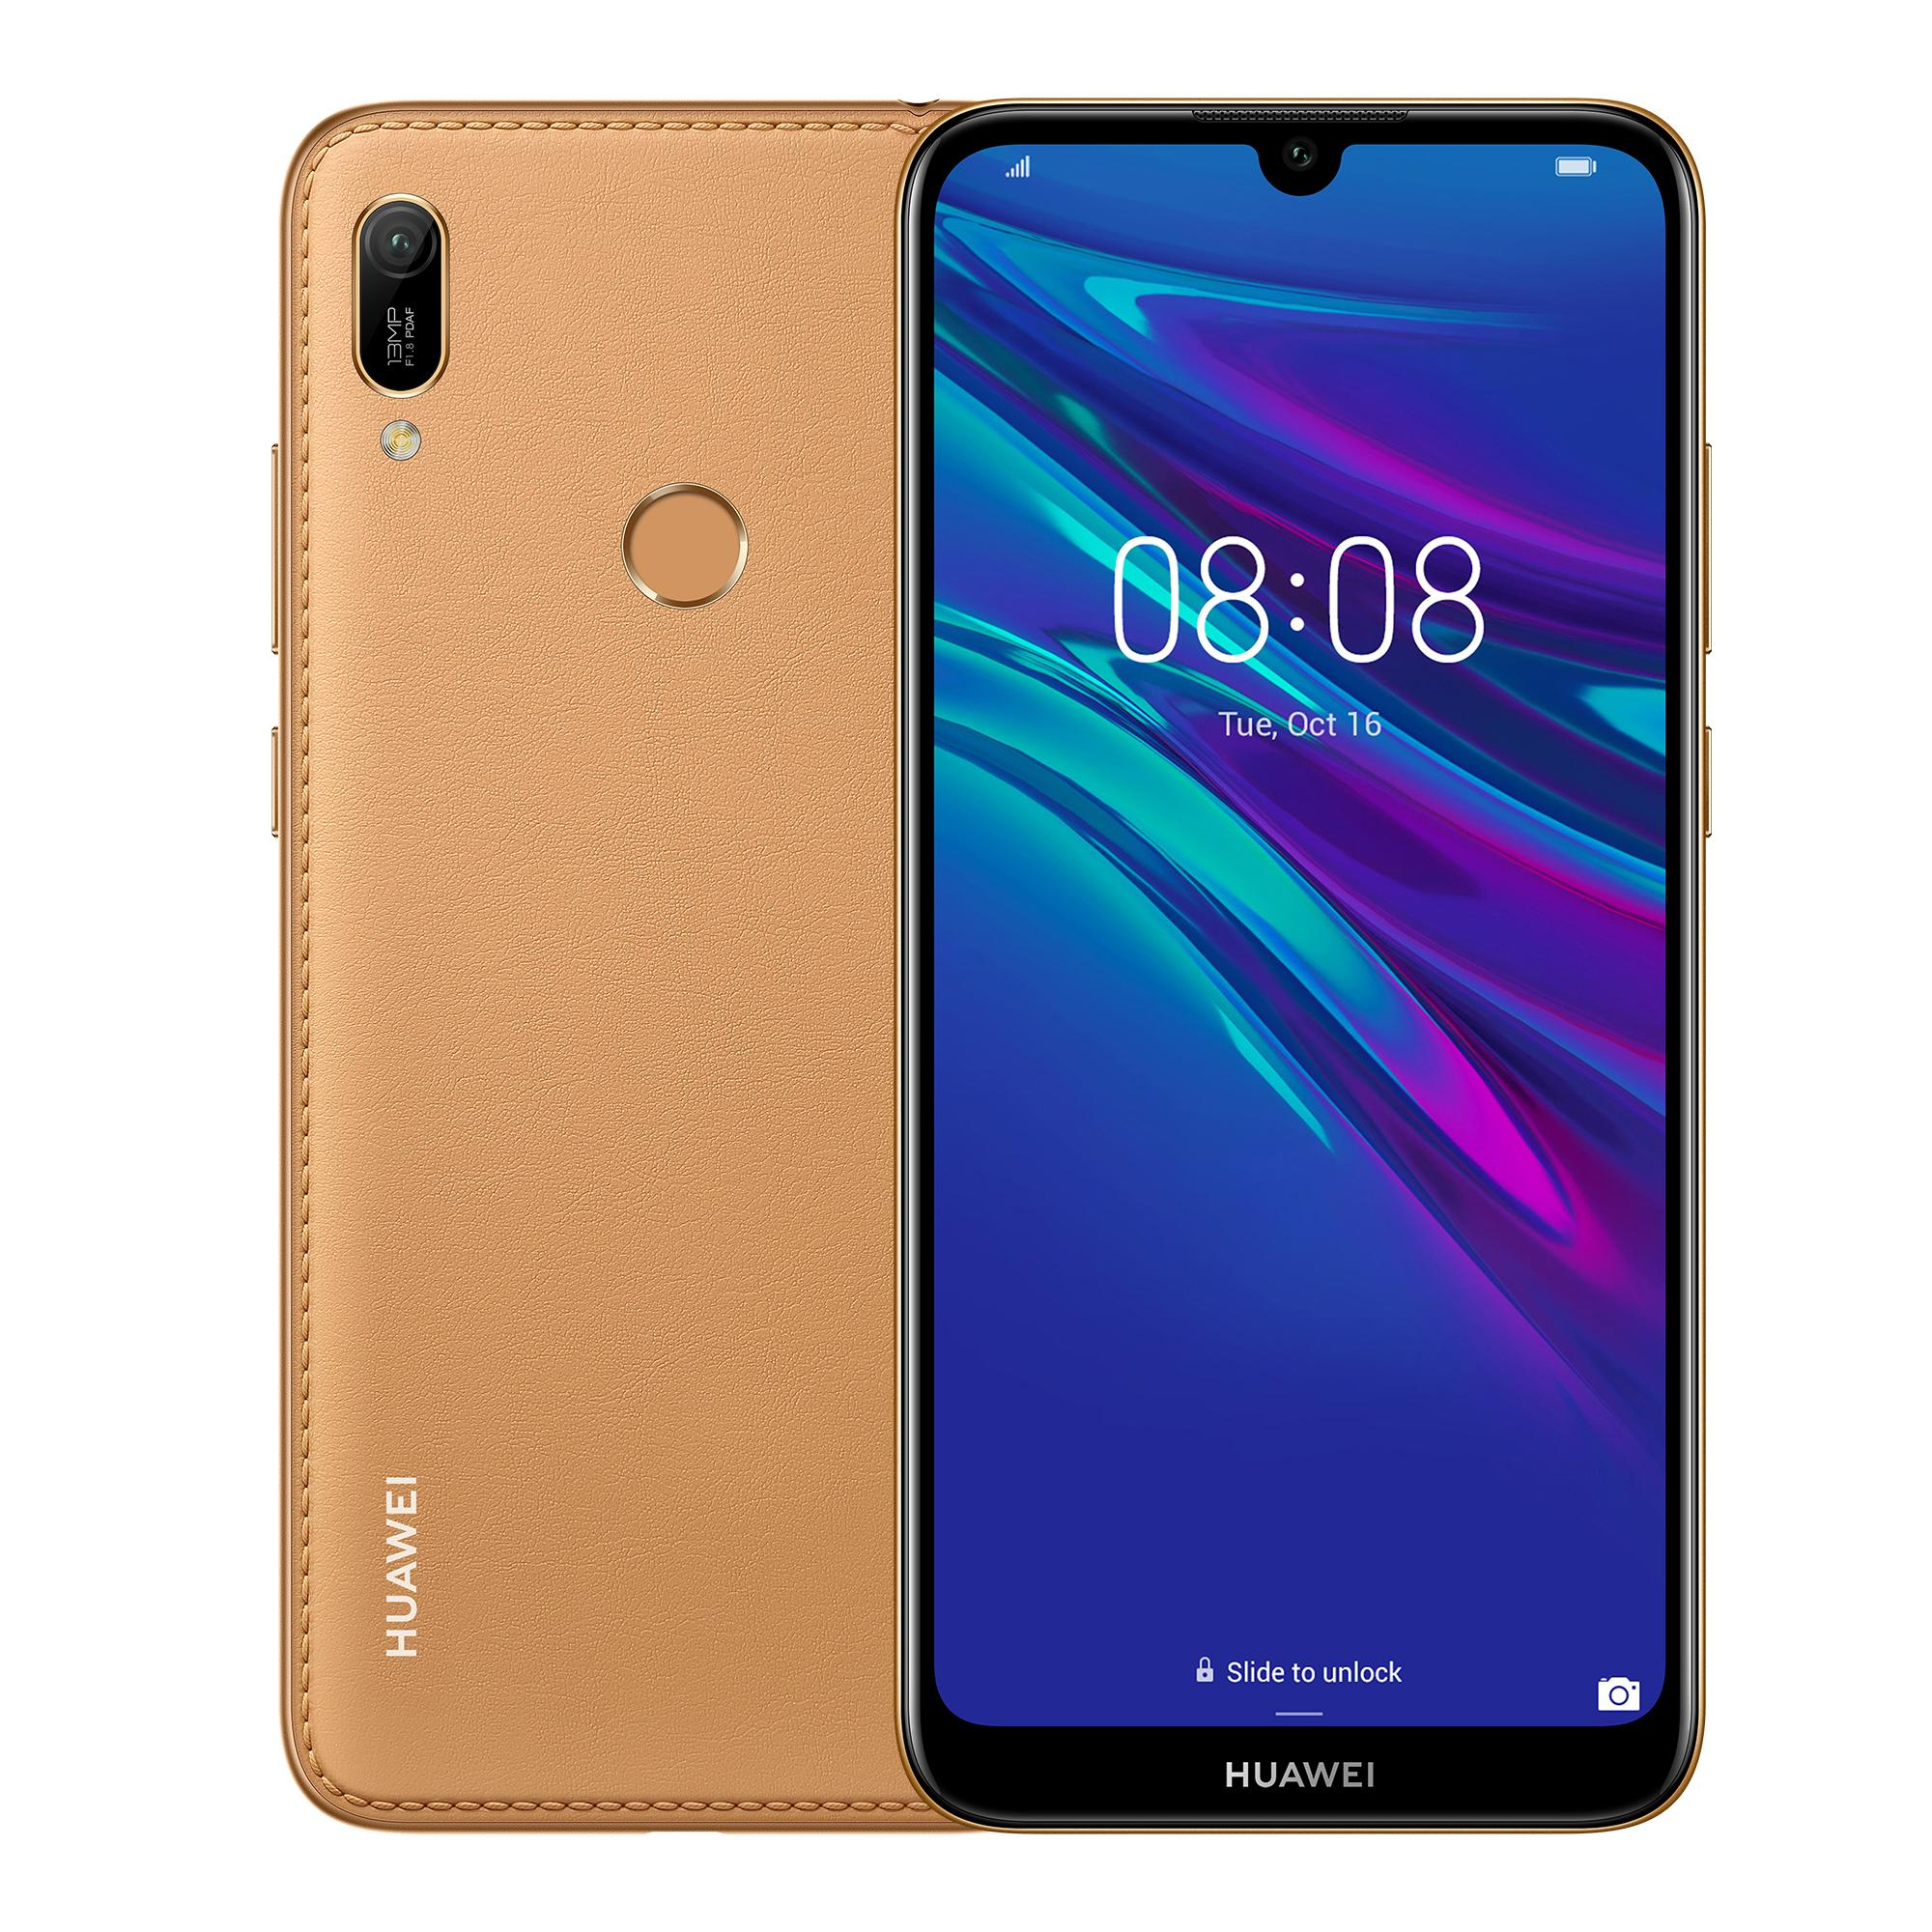 HUAWEI Y6 Prime(2019) - 6.1 Dewdrop HD+ Display - 2GB RAM - 32GB ROM - Fingerprint Sensor